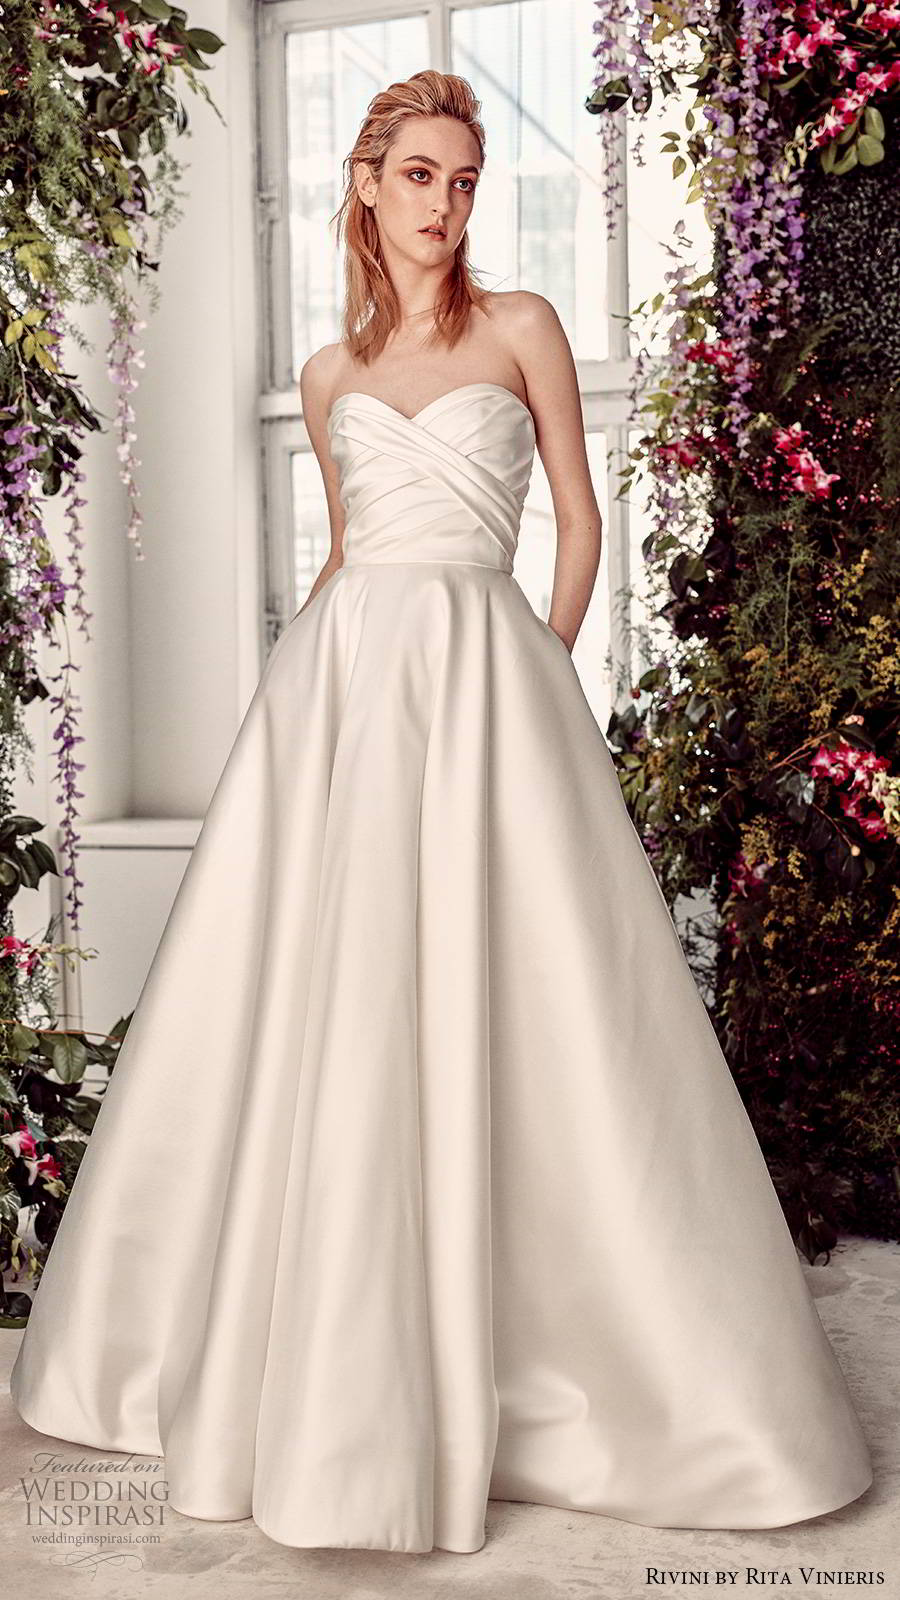 rivini by rita vinieris spring 2020 bridal strapless sweetheart ruched bodice minimalist clean modrn a line ball gown wedding dress pockets chapel train (11) mv